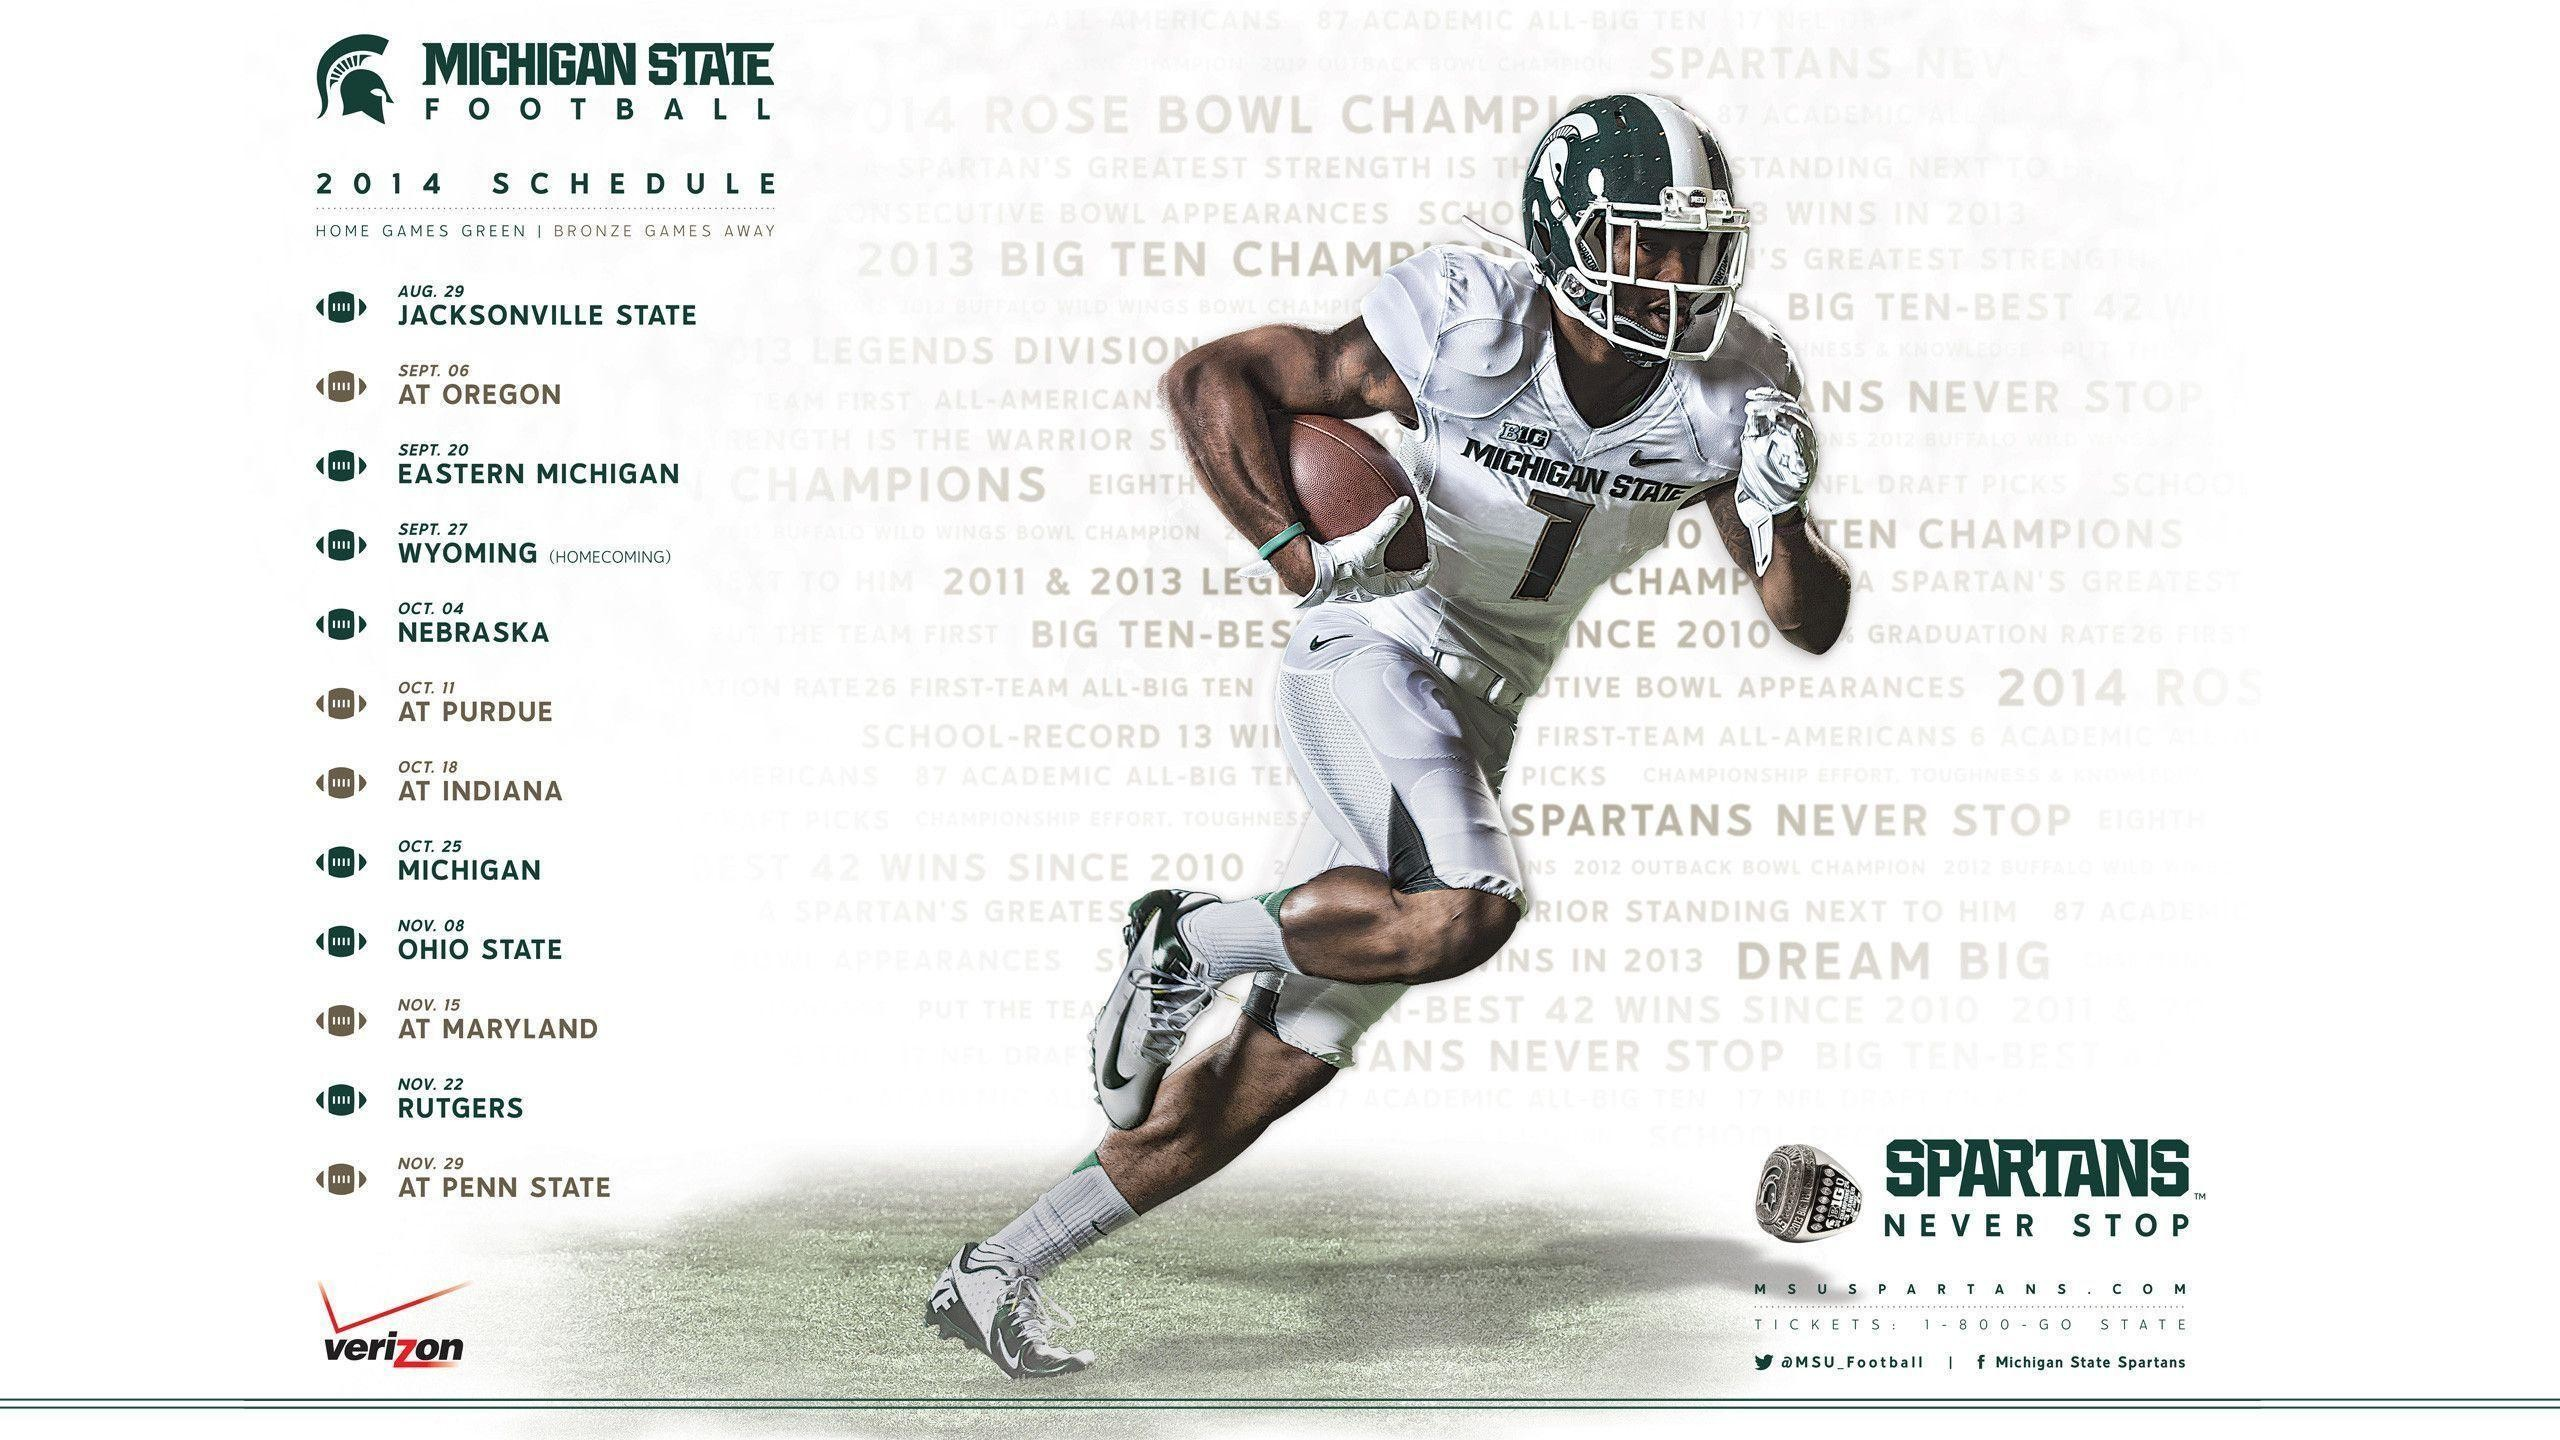 Msu Spartan Wallpapers Hd Wallpaper Collections